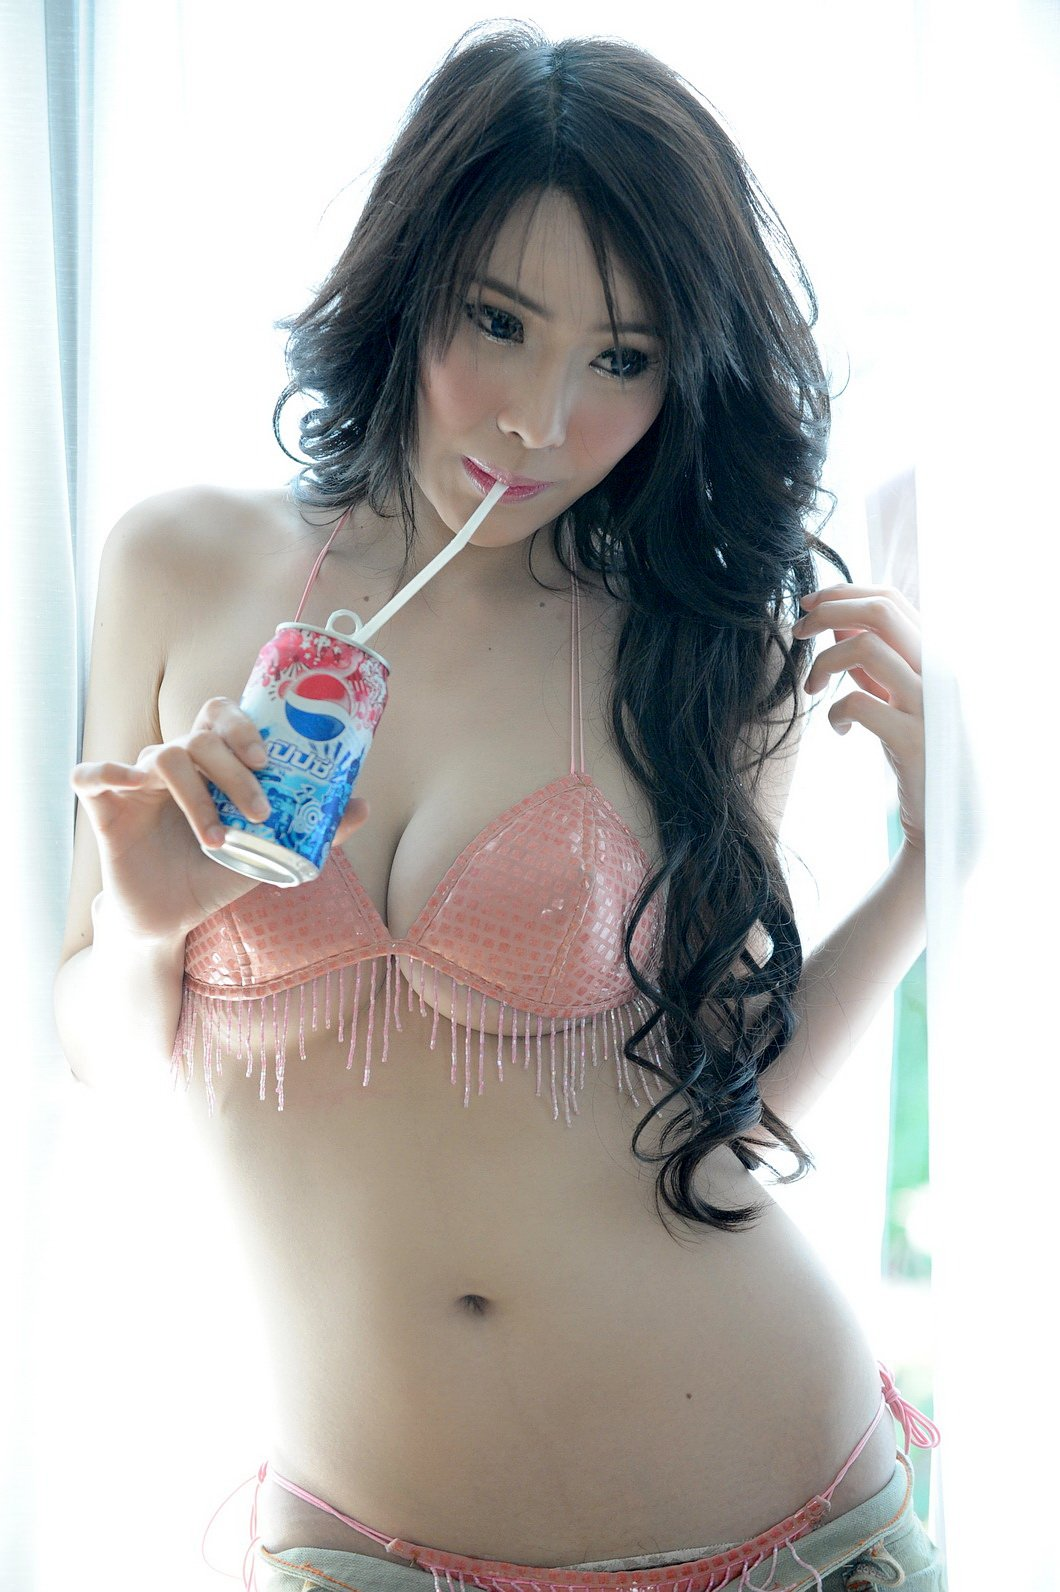 Baddest Thai girl of 2012